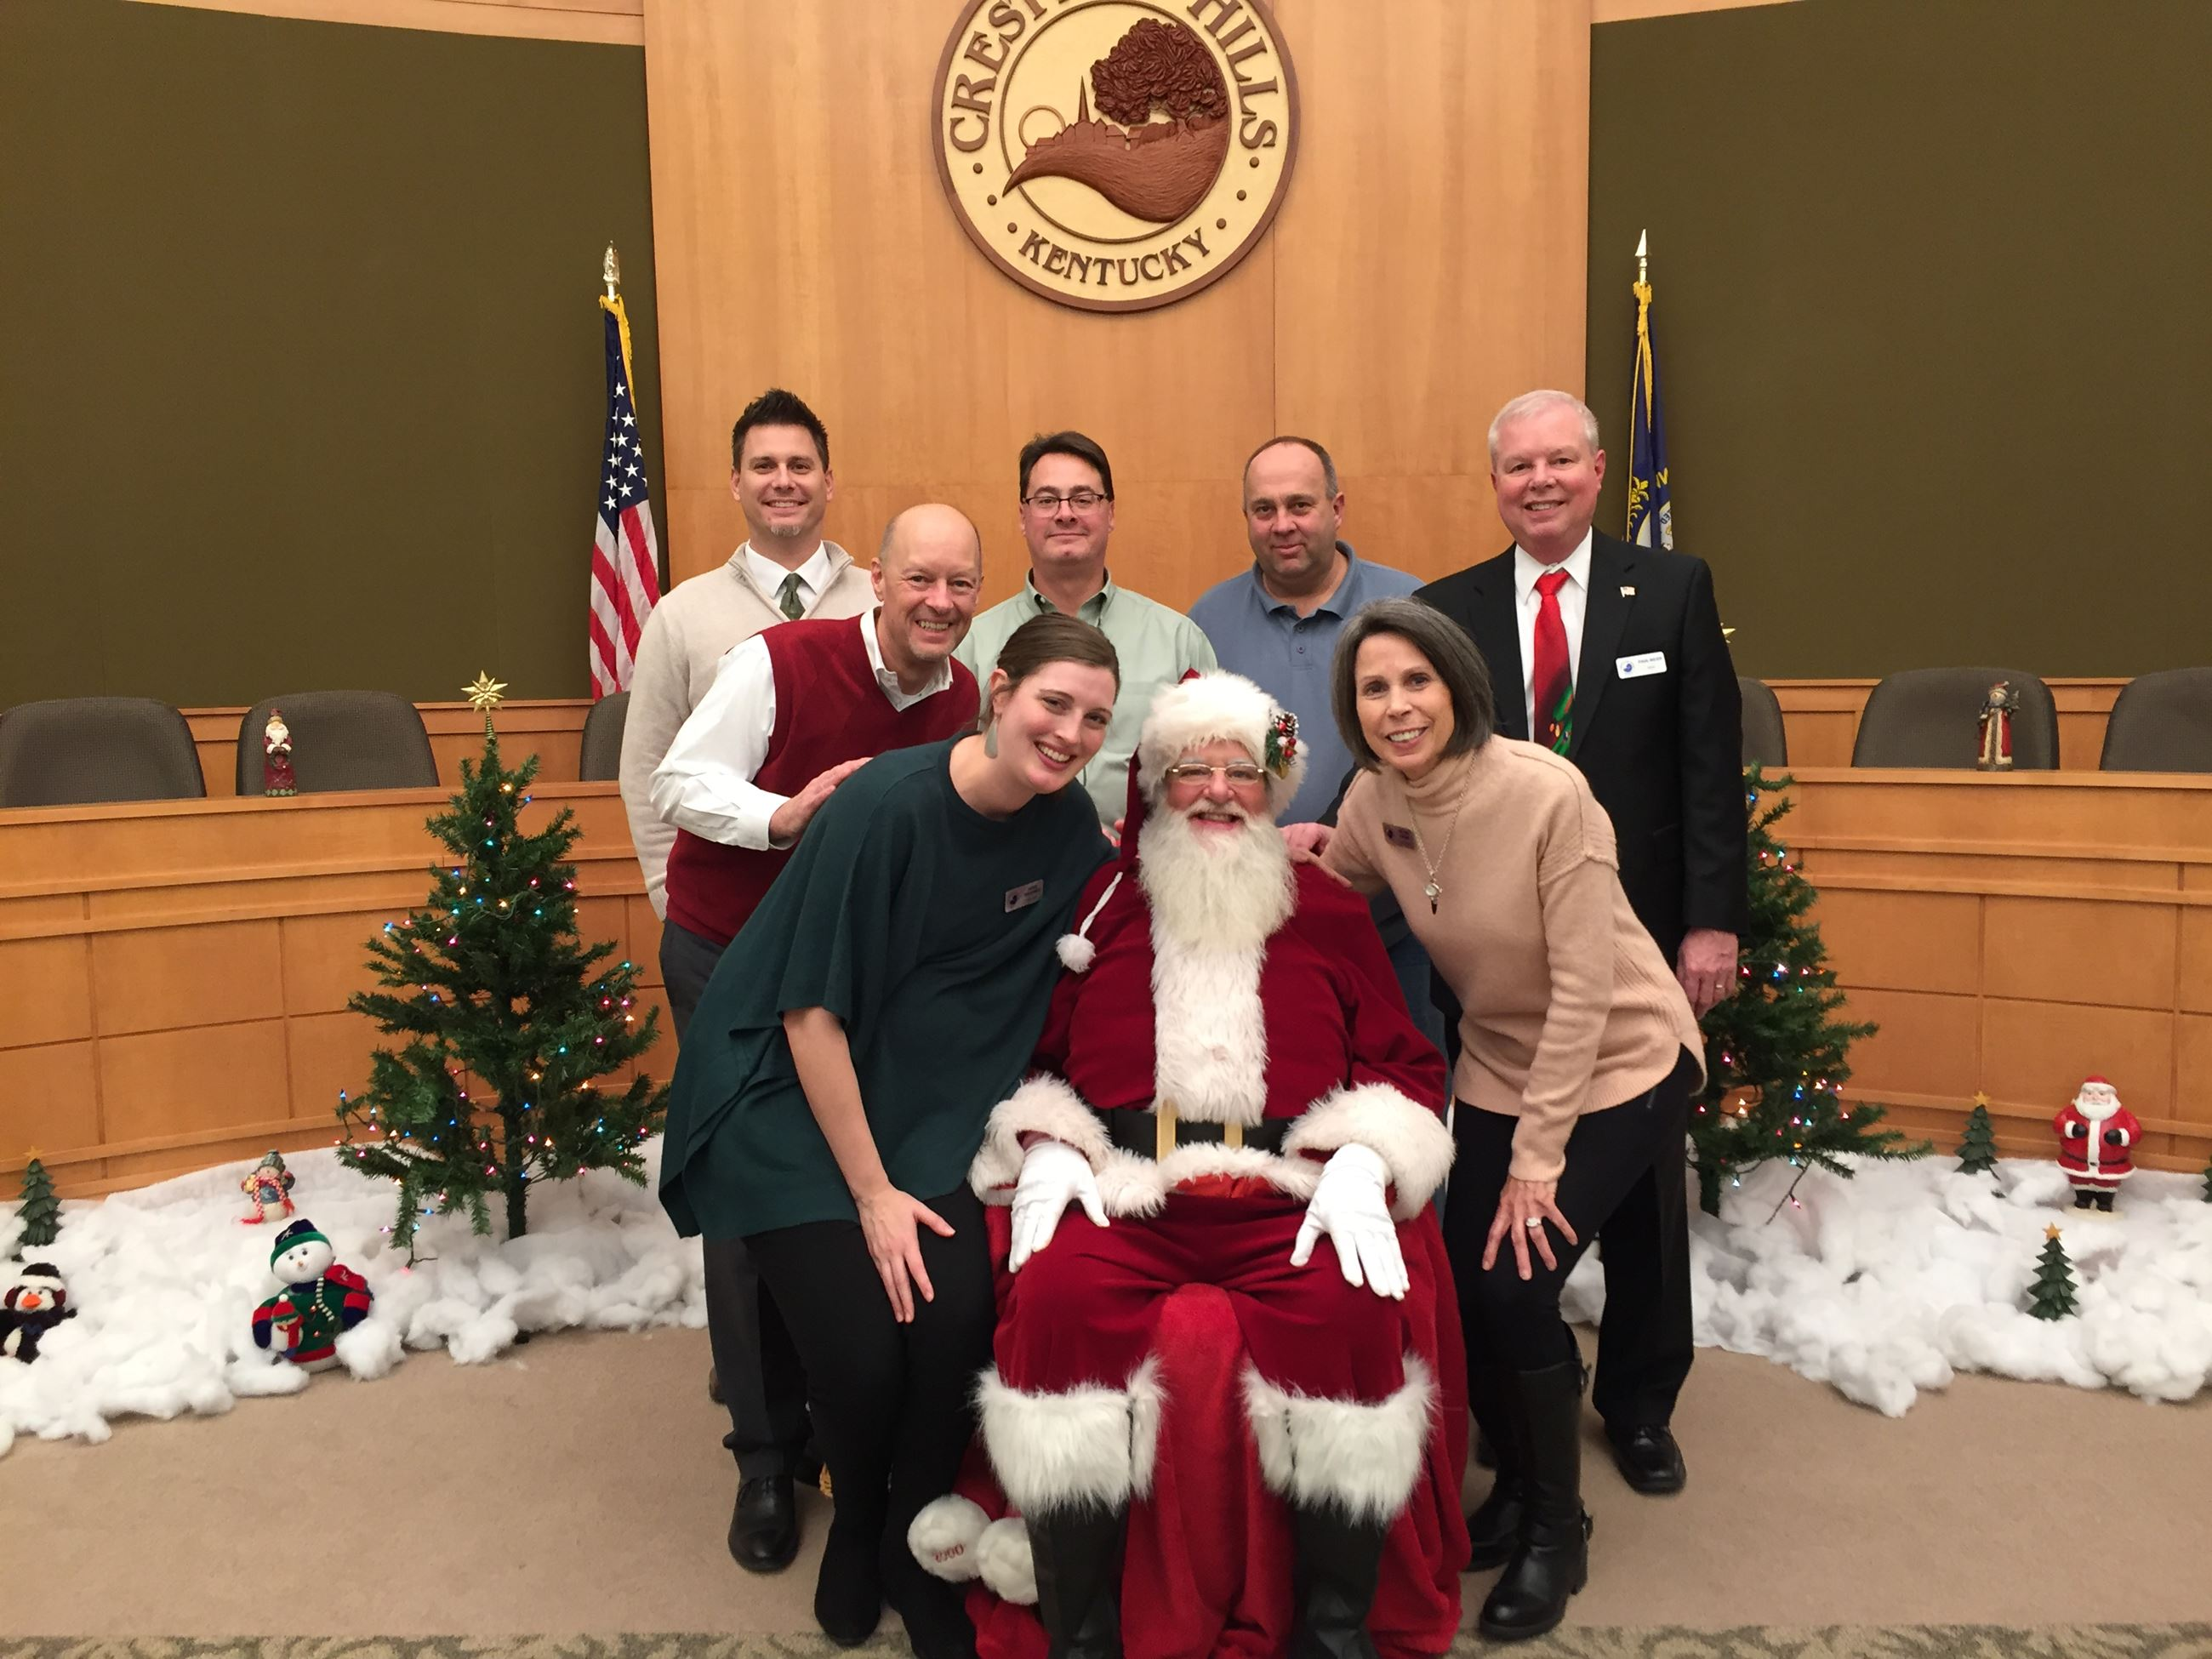 City Staff & Santa Claus